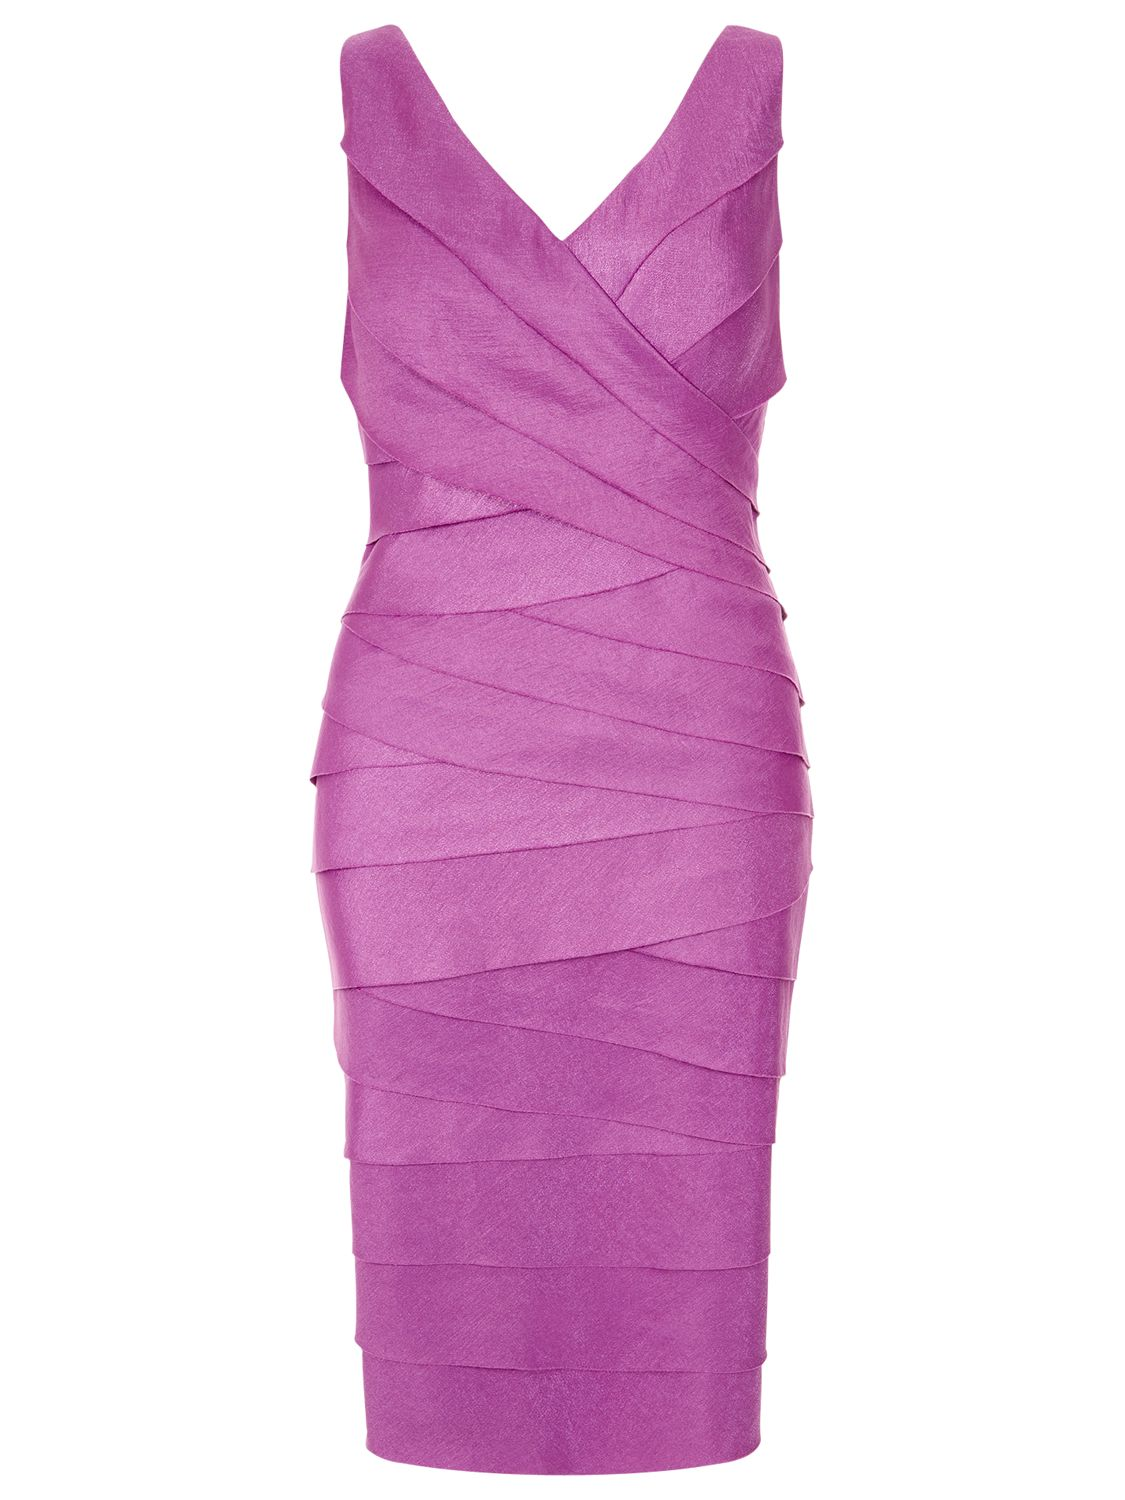 planet rose pink shutter dress fuchsia, planet, rose, pink, shutter, dress, fuchsia, 8 10 12 14 18 16 20, women, plus size, womens dresses, gifts, wedding, wedding clothing, mother of the bride, female guests, 1929841